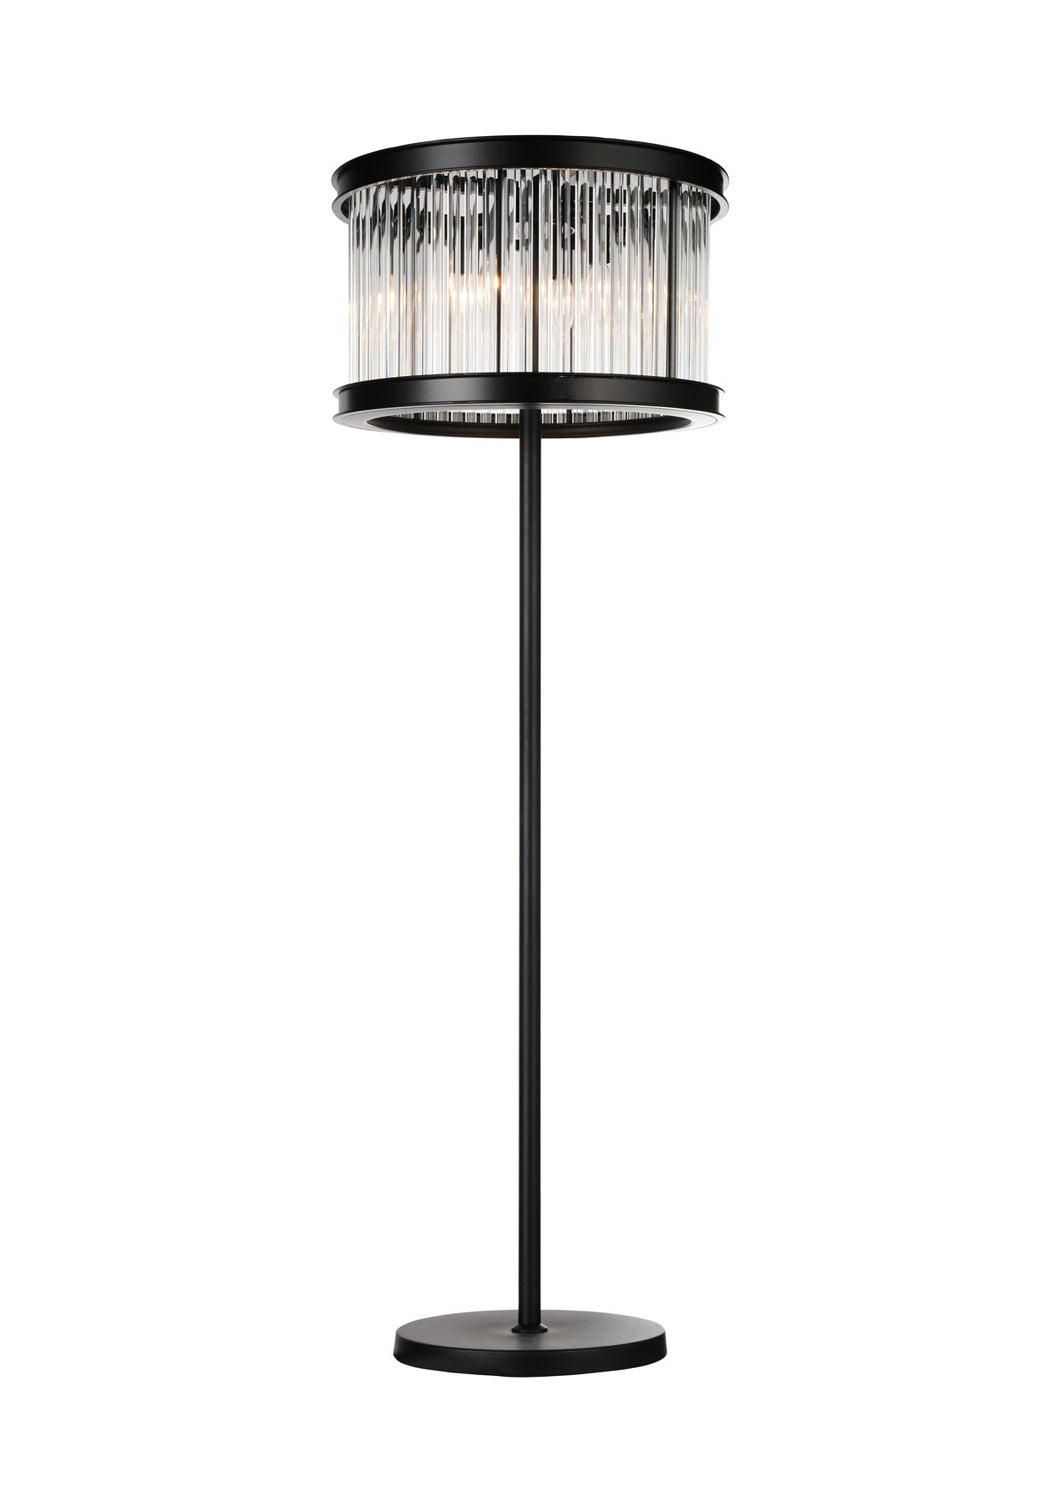 6 Light Floor Lamp with Black finish